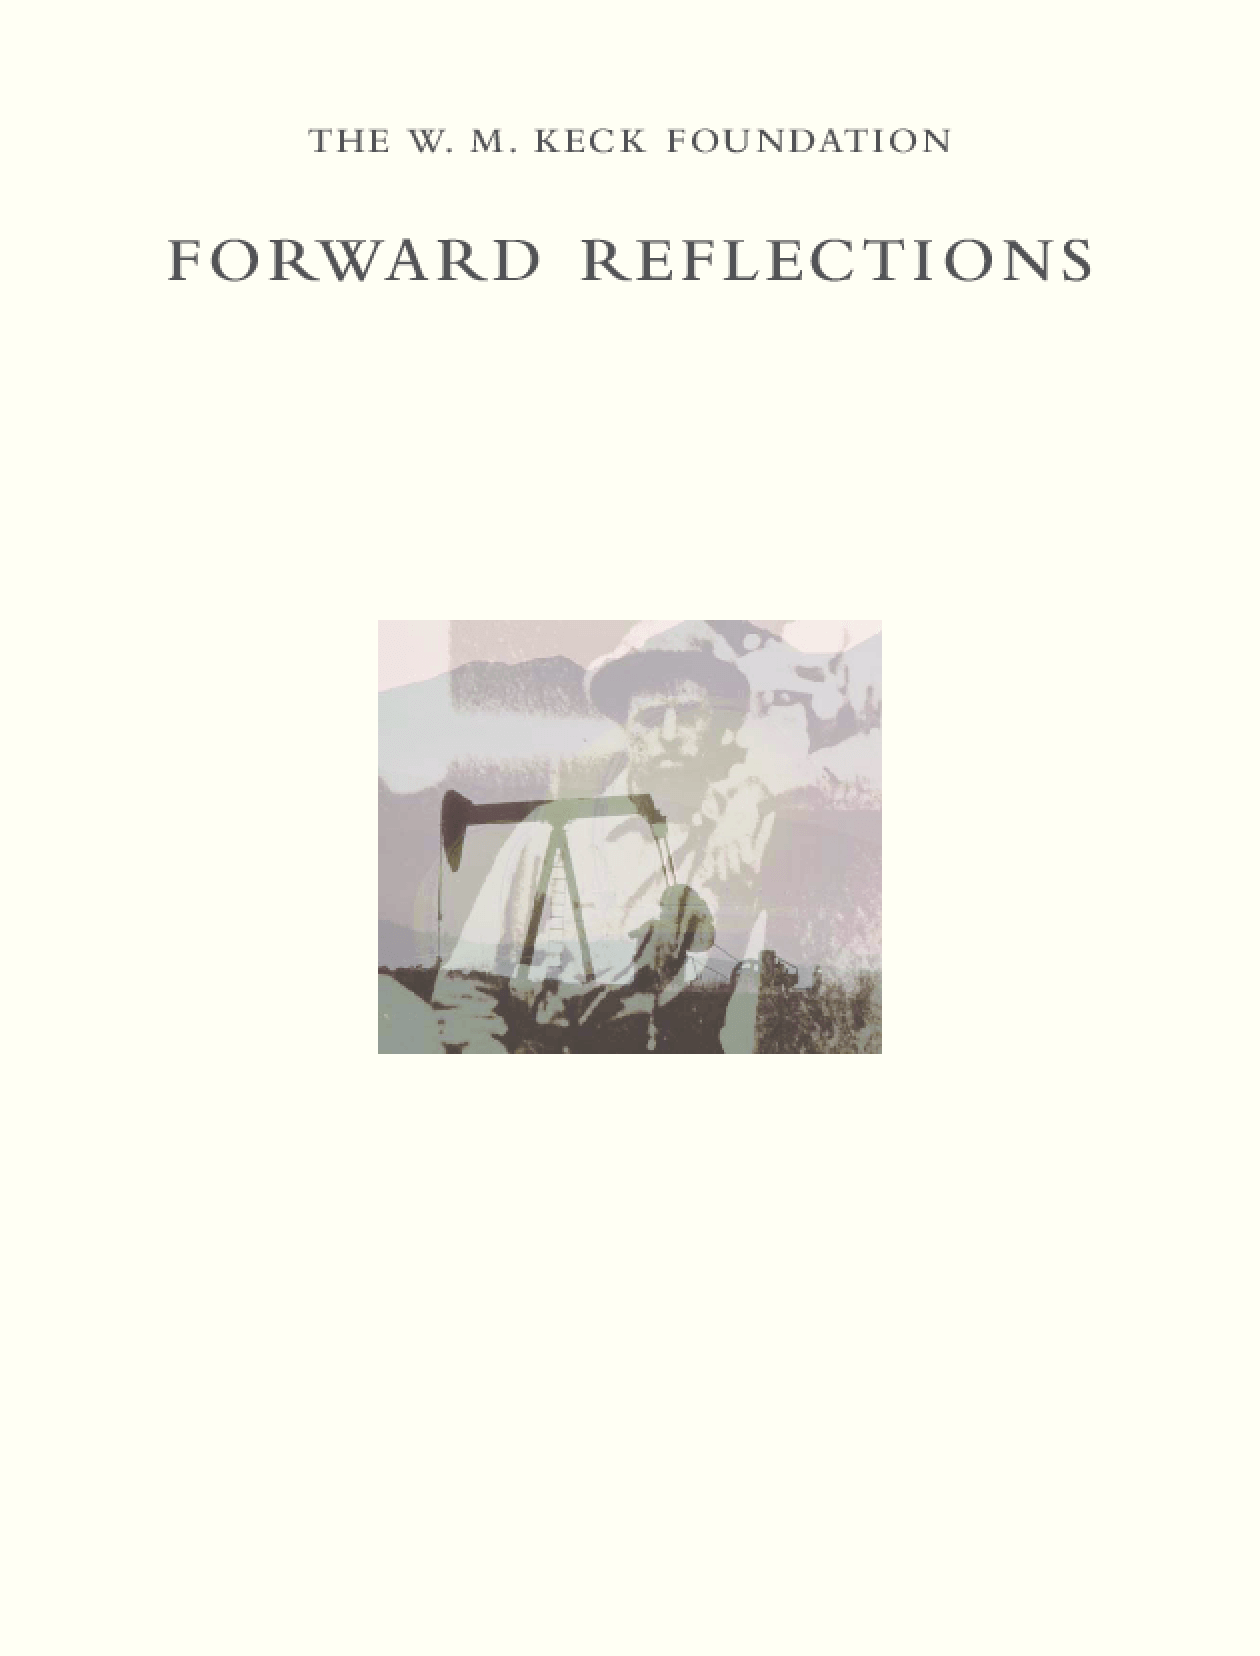 W. M. Keck Foundation - 2003 Annual Report: Forward Reflections